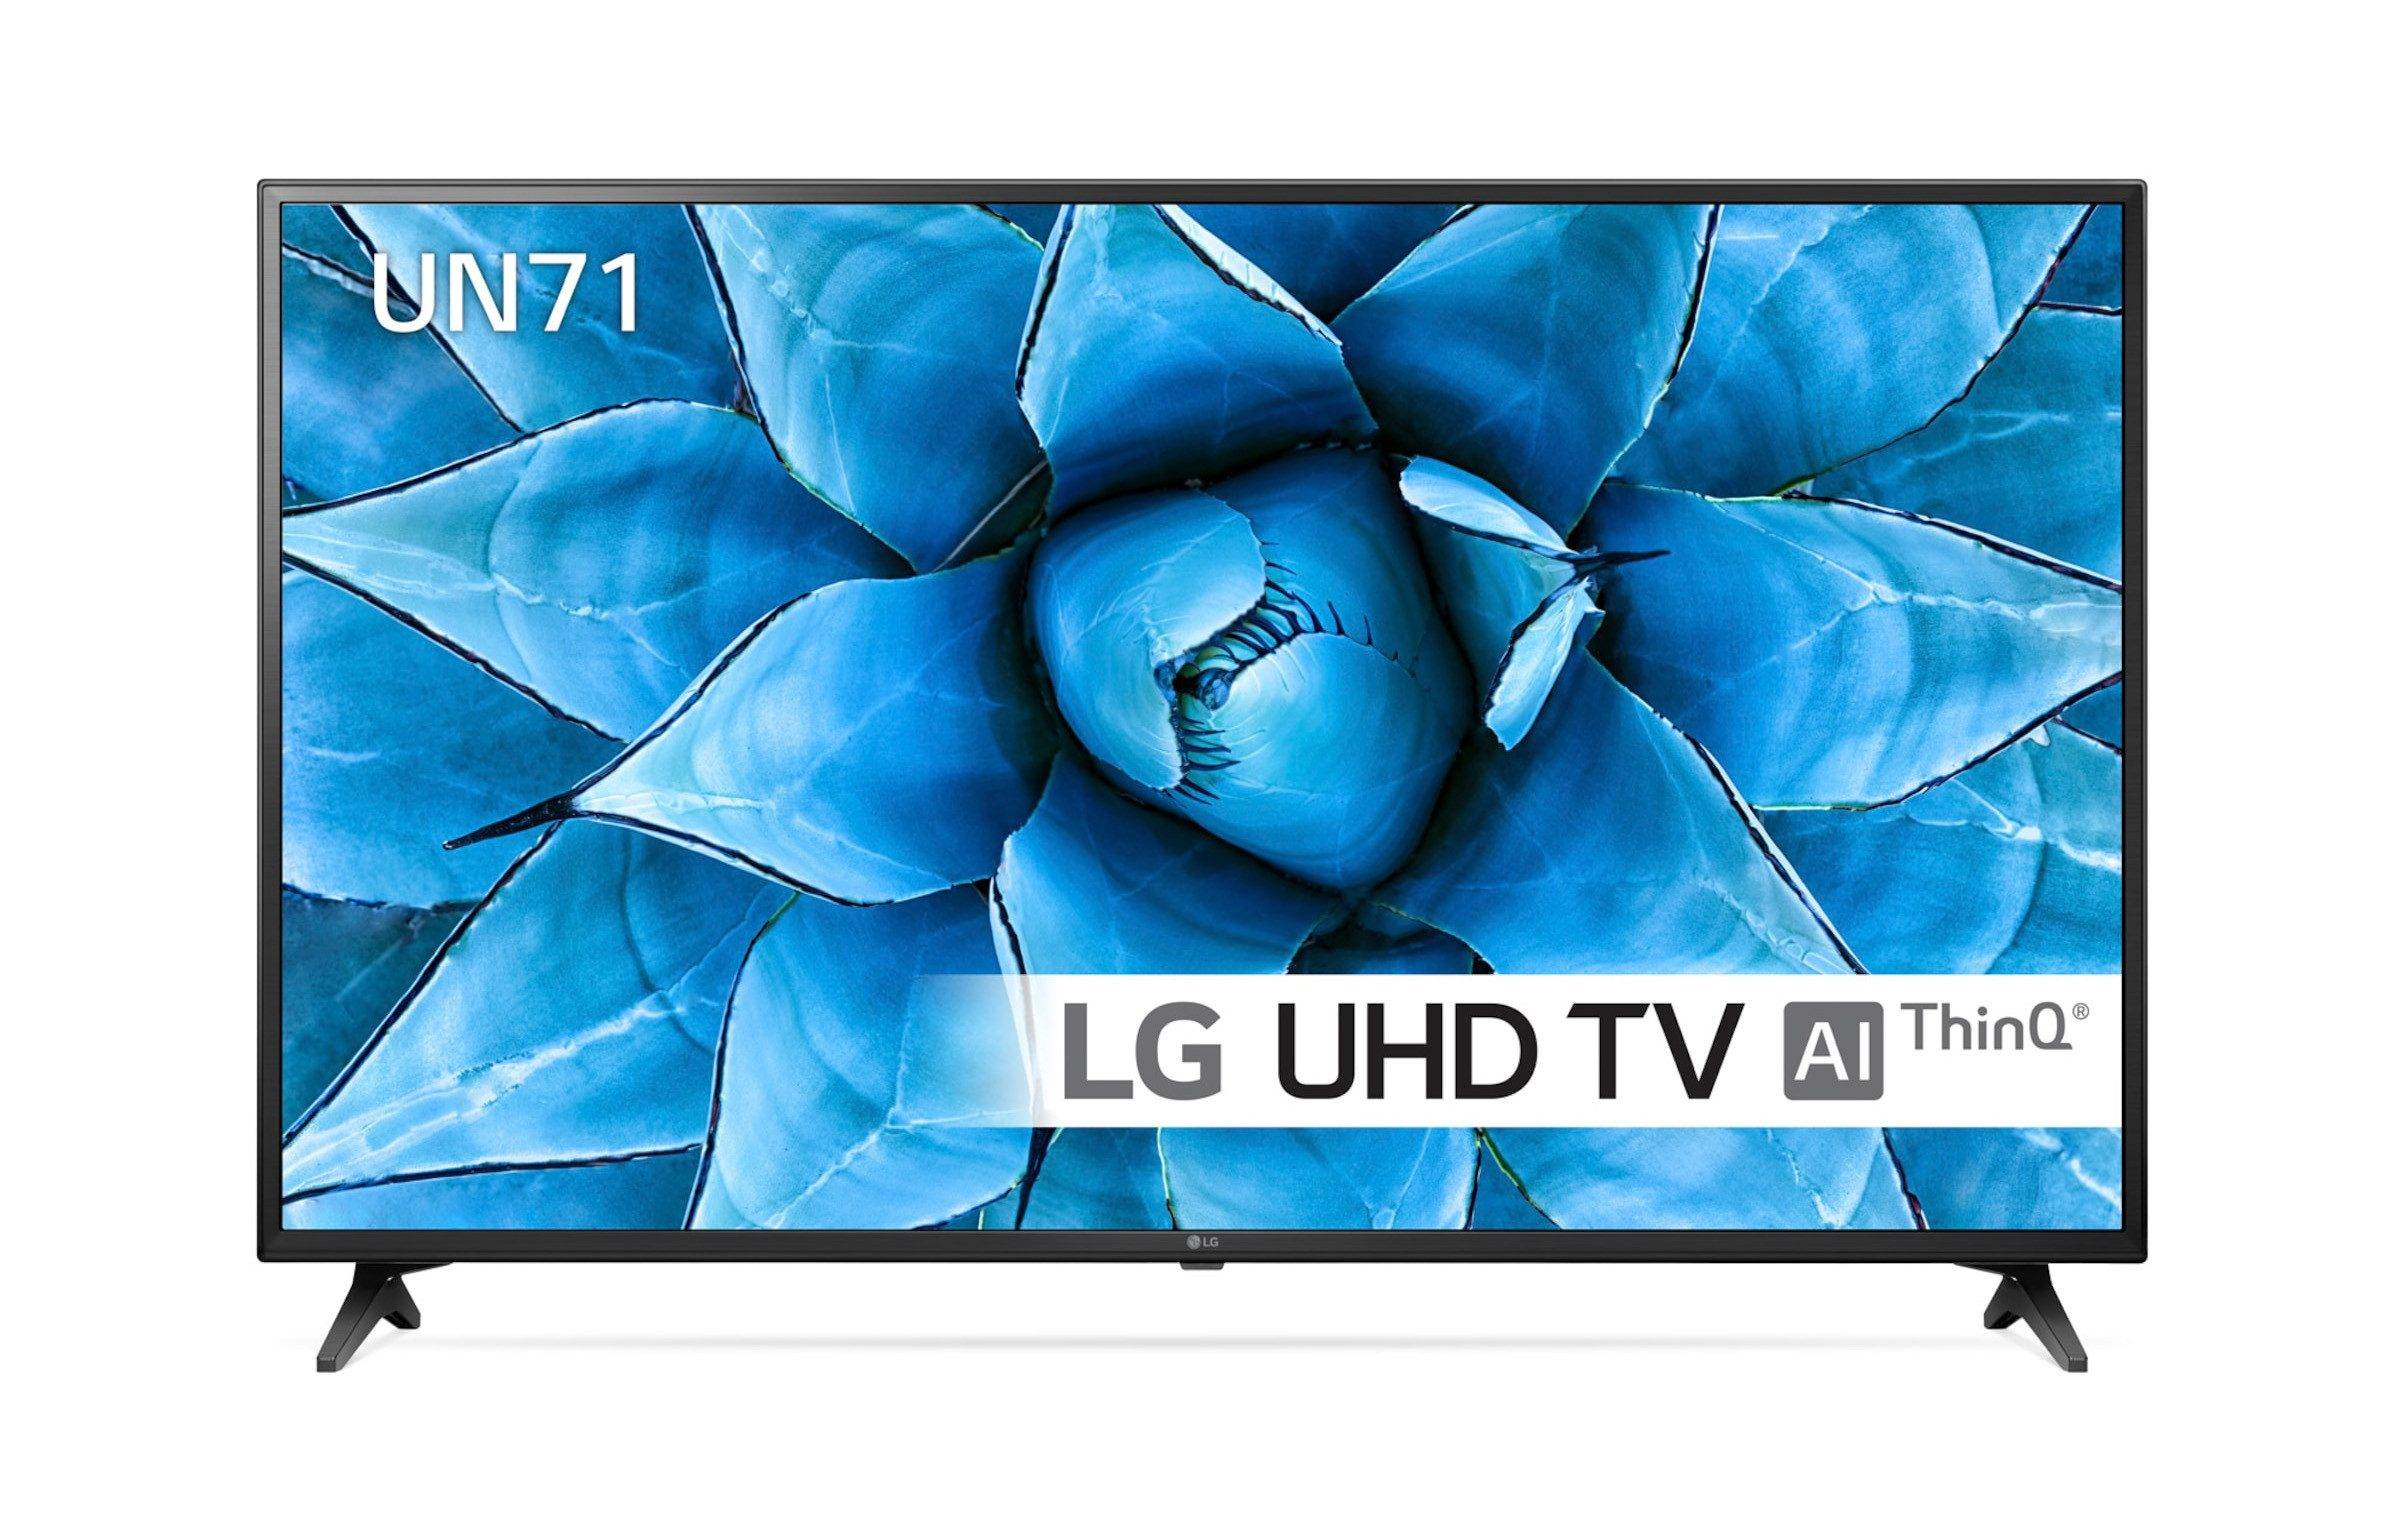 LG 55-tums UHD 4K Smart-TV med WiFi